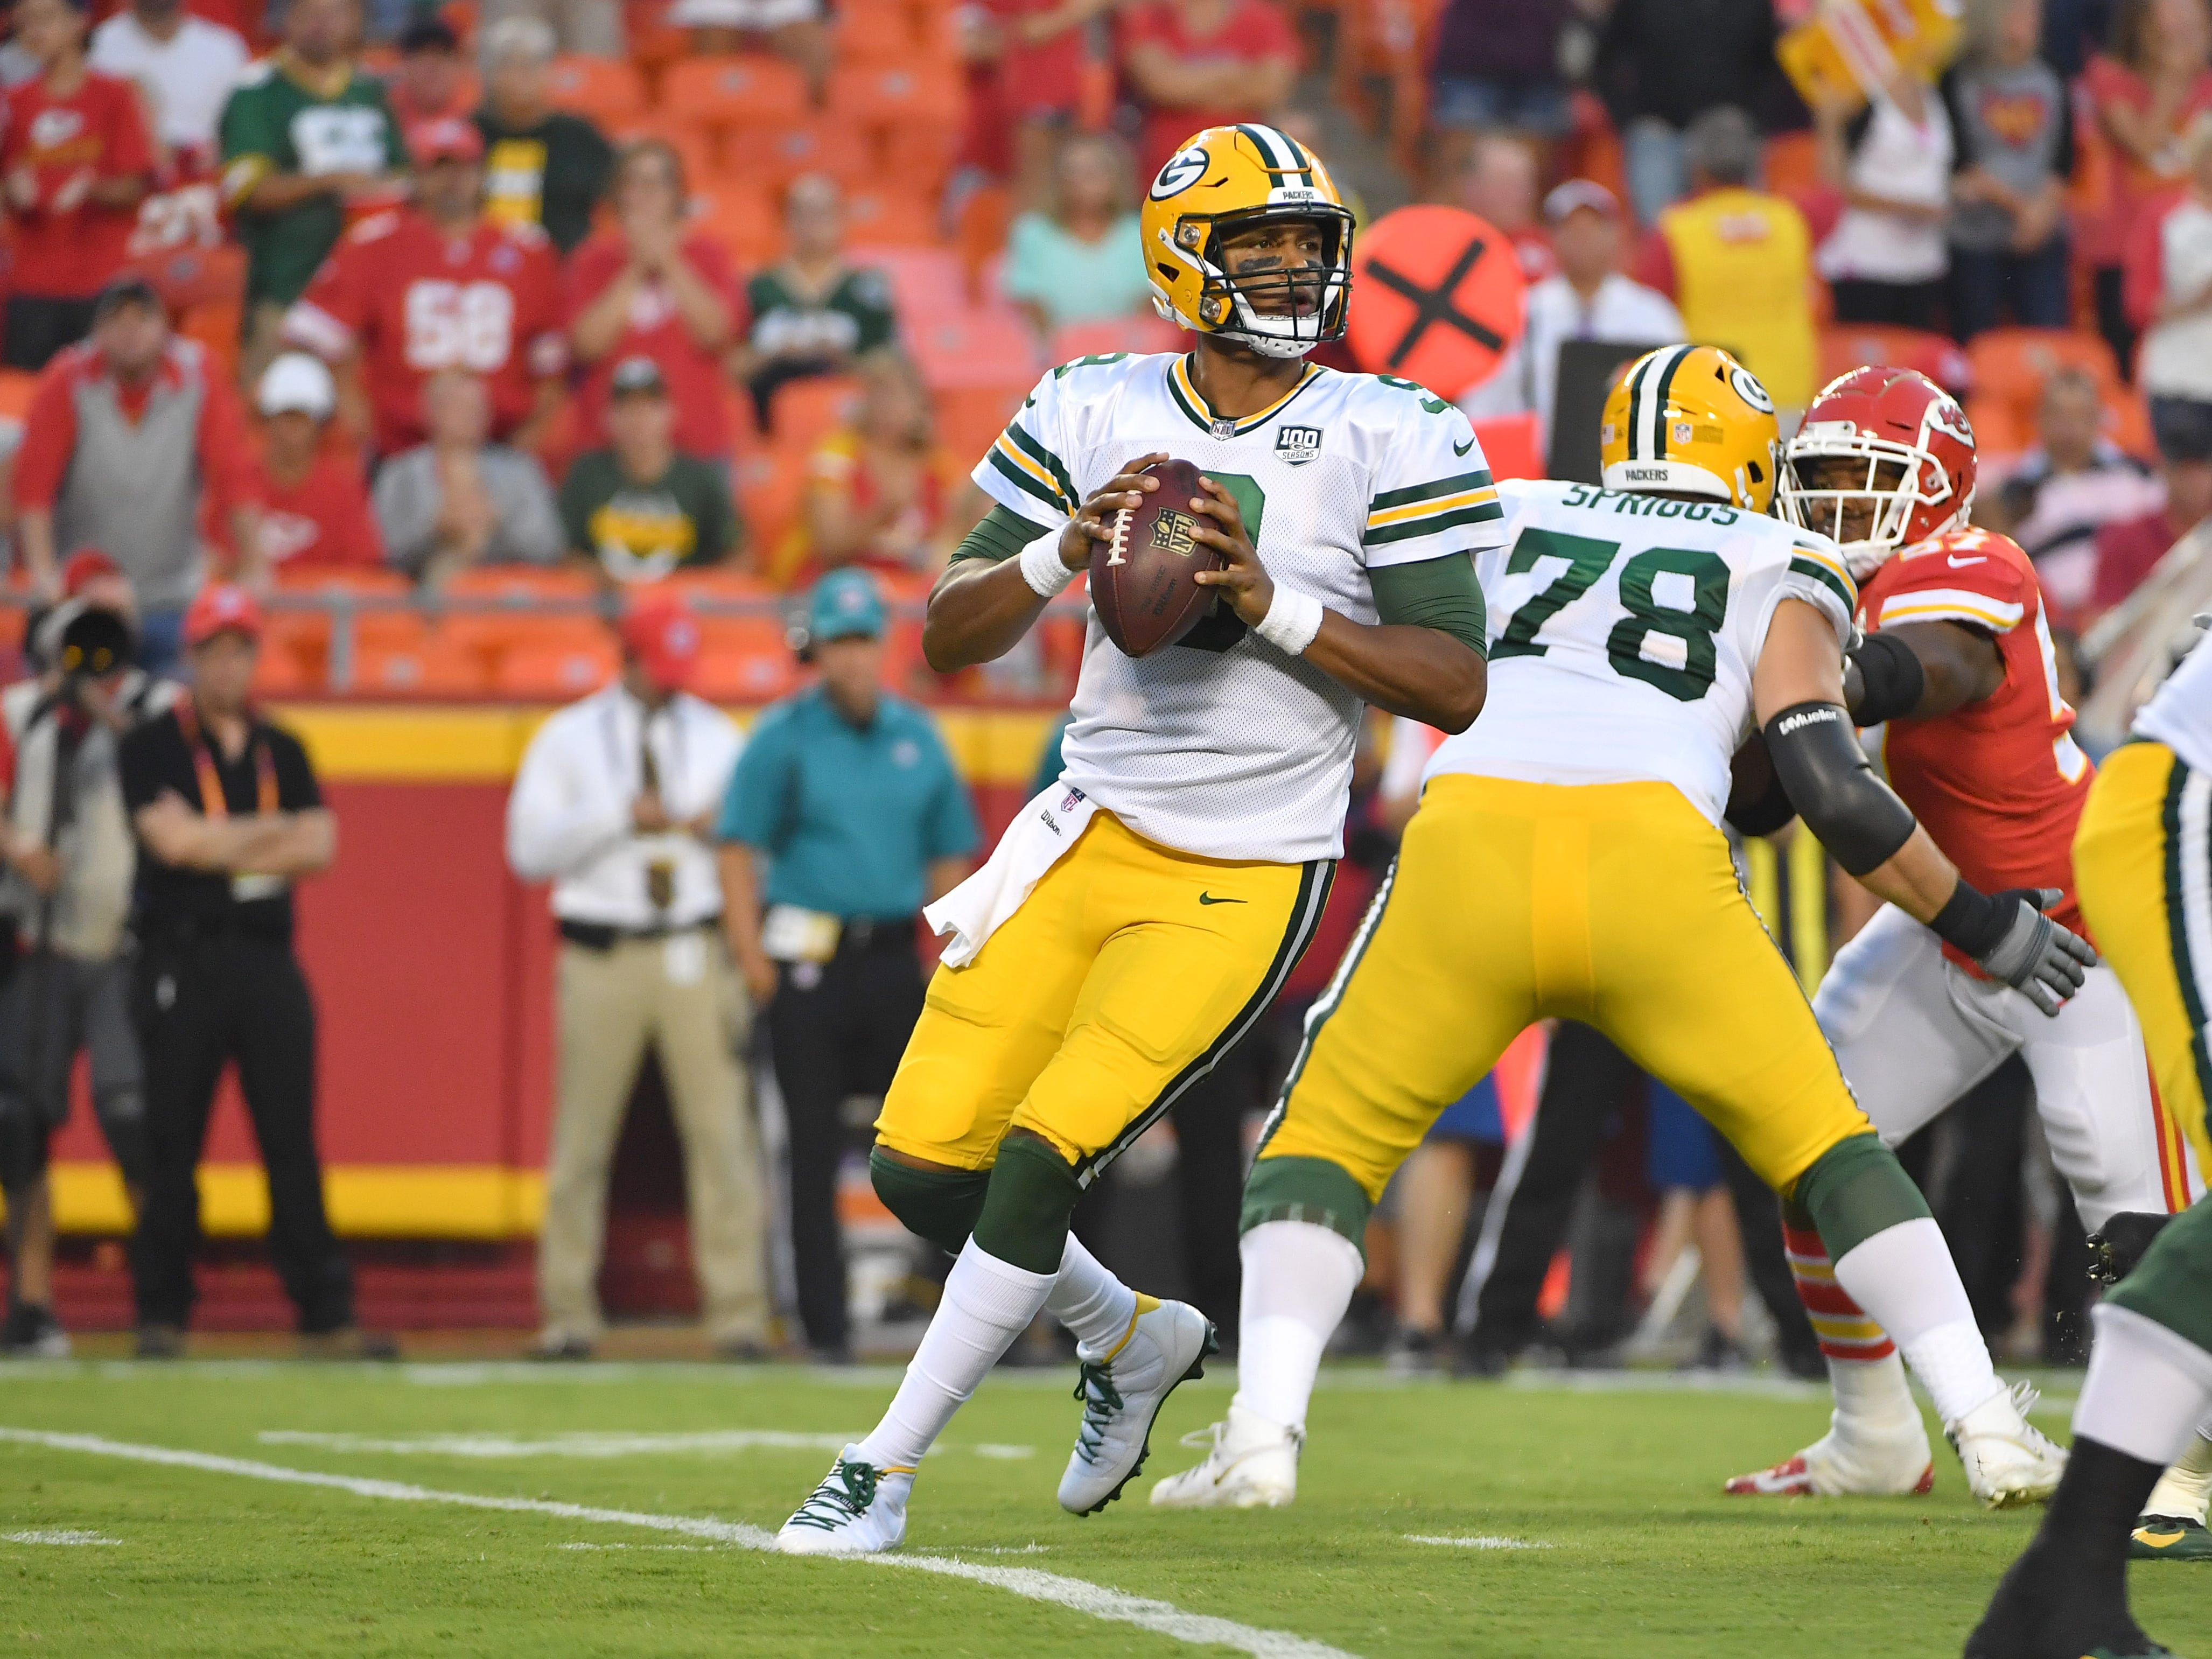 Aug 30, 2018; Kansas City, MO, USA; Green Bay Packers quarterback DeShone Kizer (9) drops back to pass during the first half against the Kansas City Chiefs at Arrowhead Stadium.